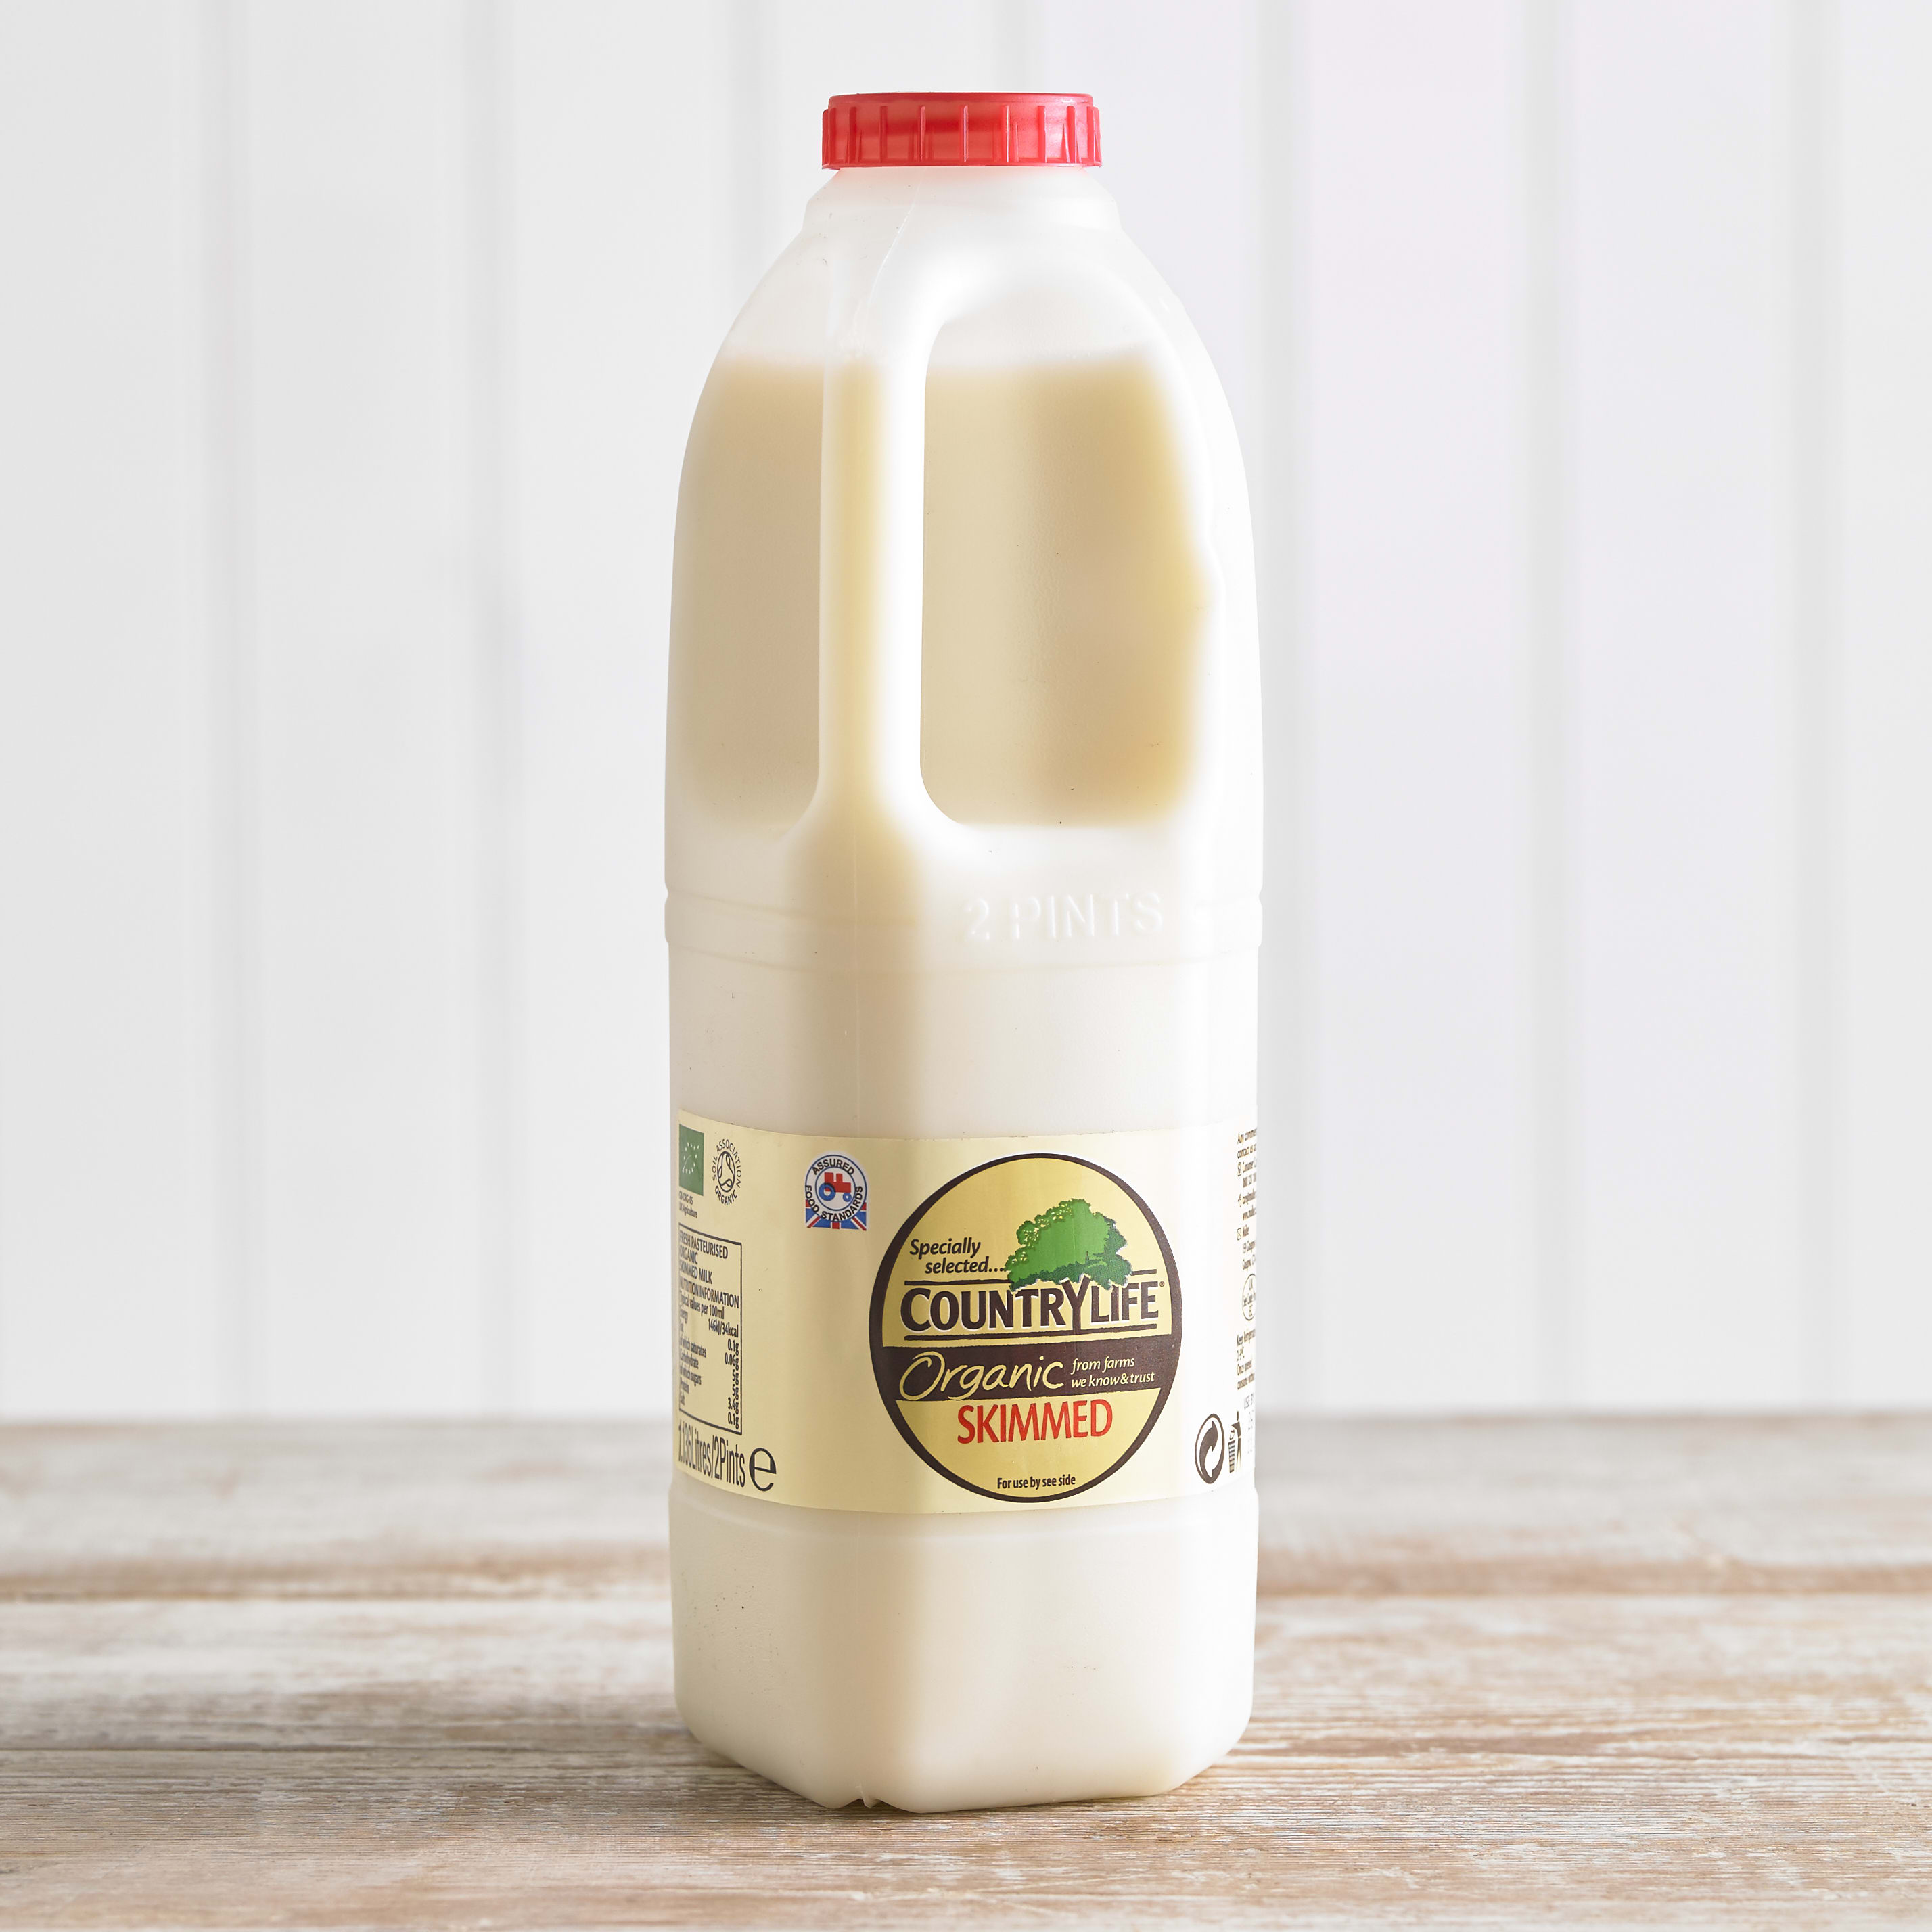 Country Life Organic Skimmed Milk, 1.136L, 2pt